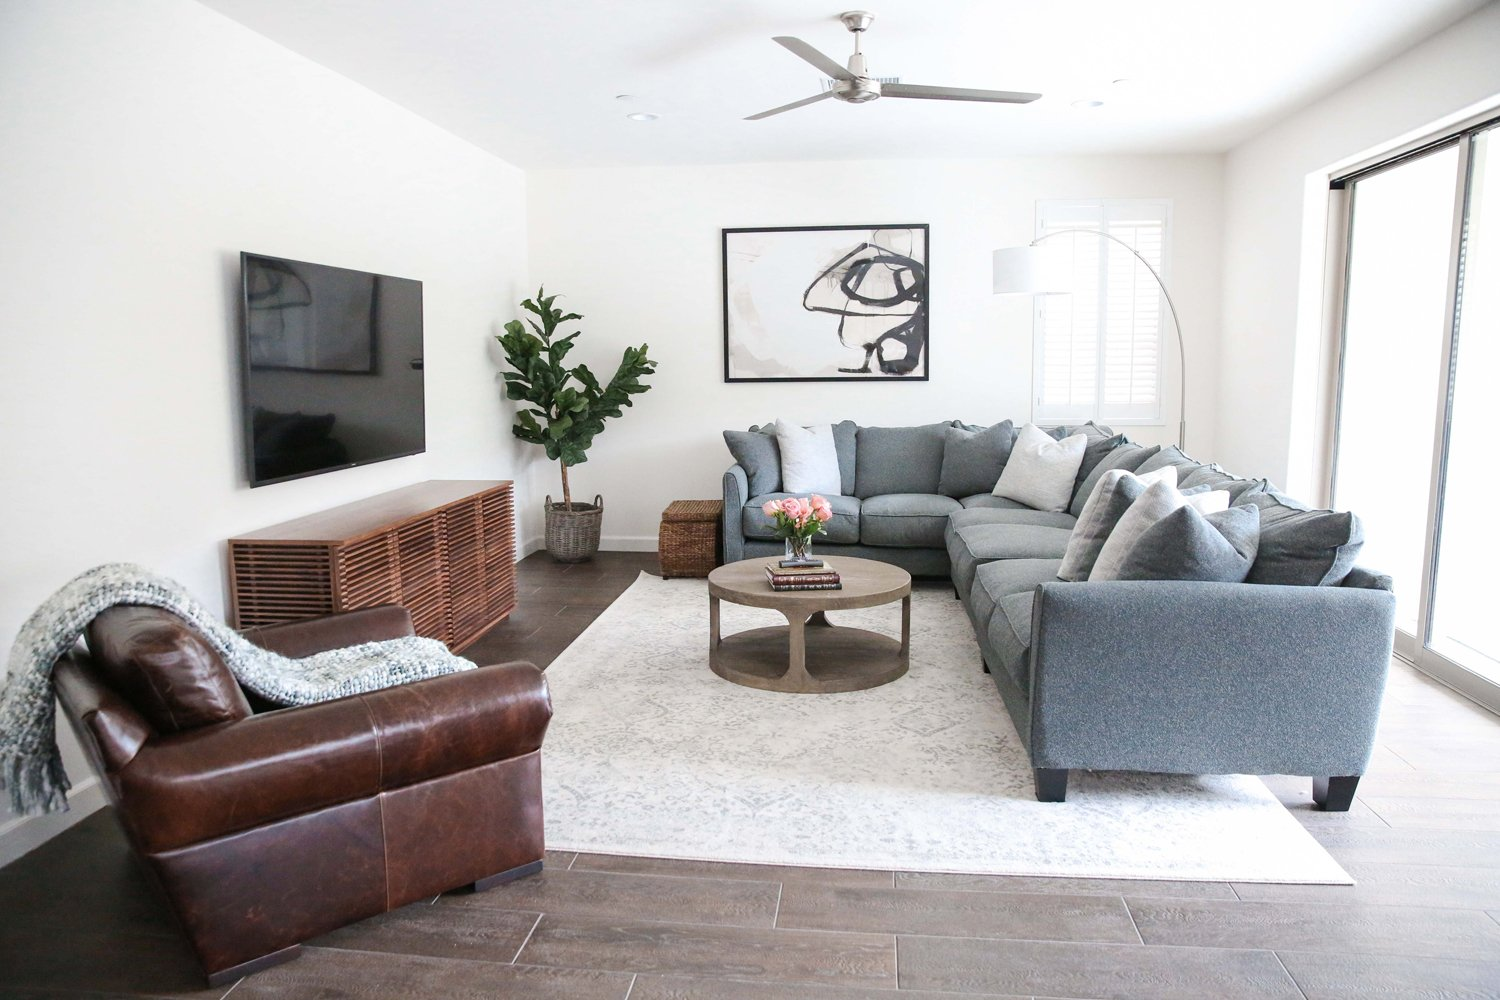 Merrick's Art Simple Neutral Living Room